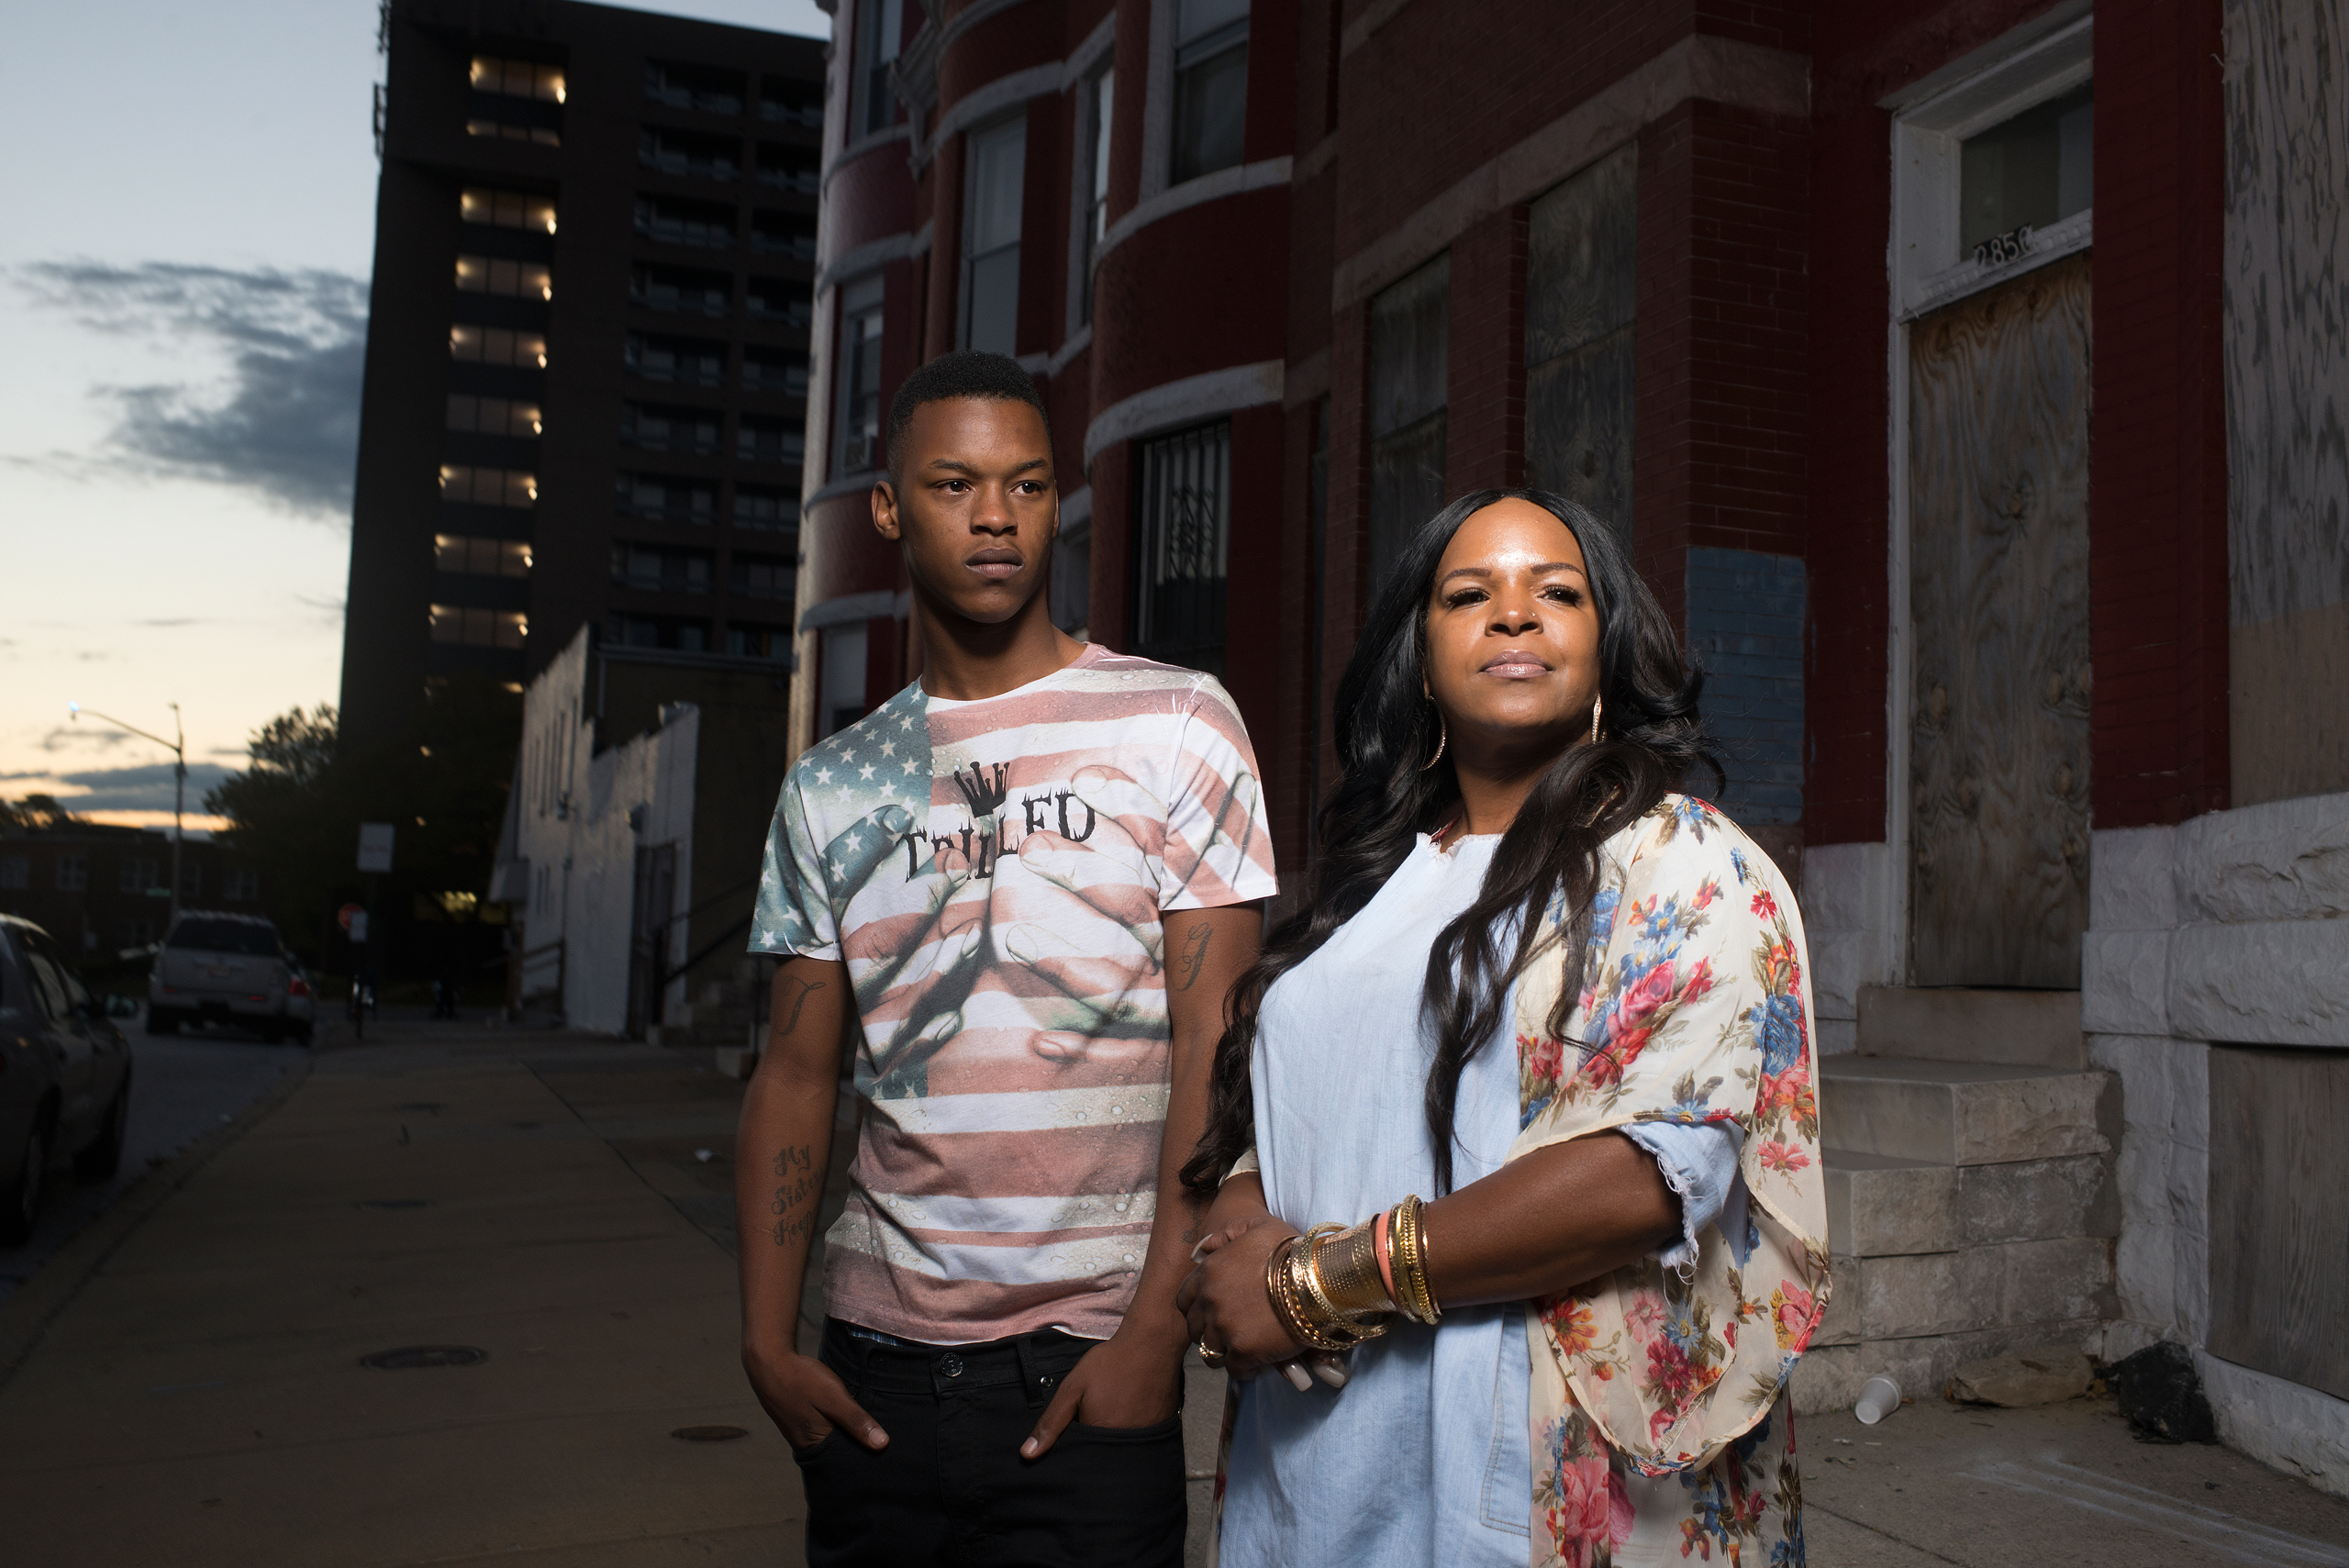 Michael Singleton and his mother Toya Graham outside their home in Baltimore on Oct. 14, 2015.